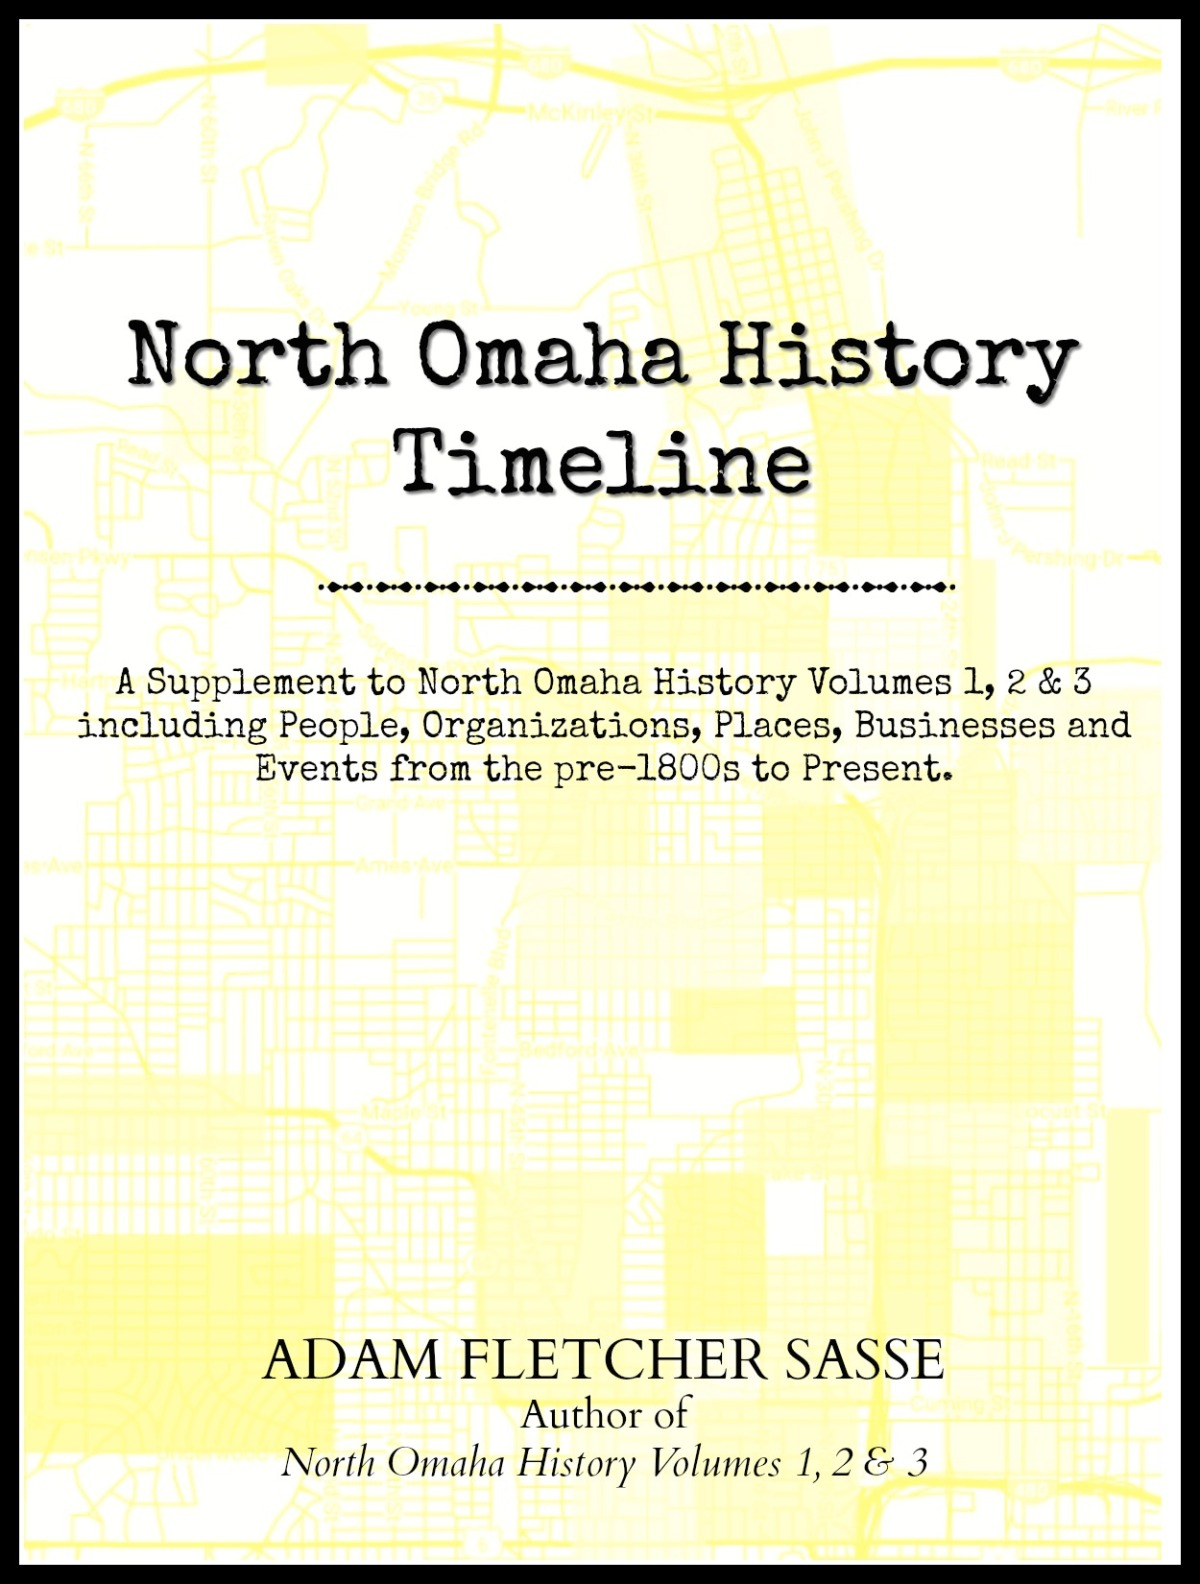 North Omaha History Timeline by Adam Fletcher Sasse at http://wp.me/a6LRP1-1Lk